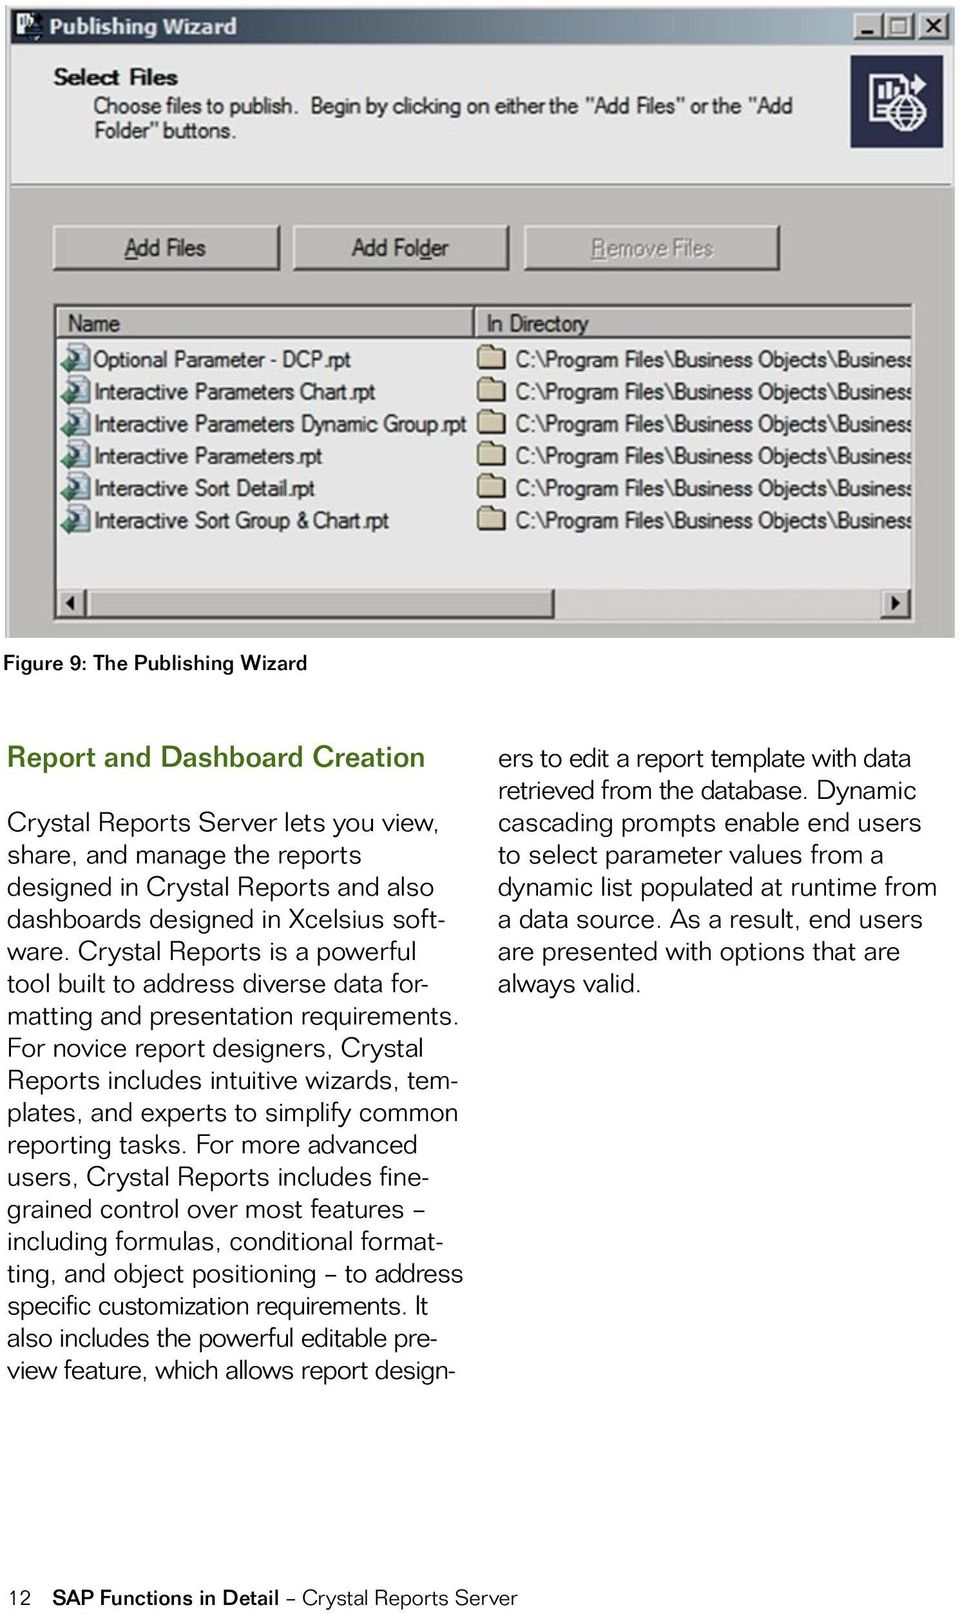 For novice report designers, Crystal Reports includes intuitive wizards, templates, and experts to simplify common reporting tasks.